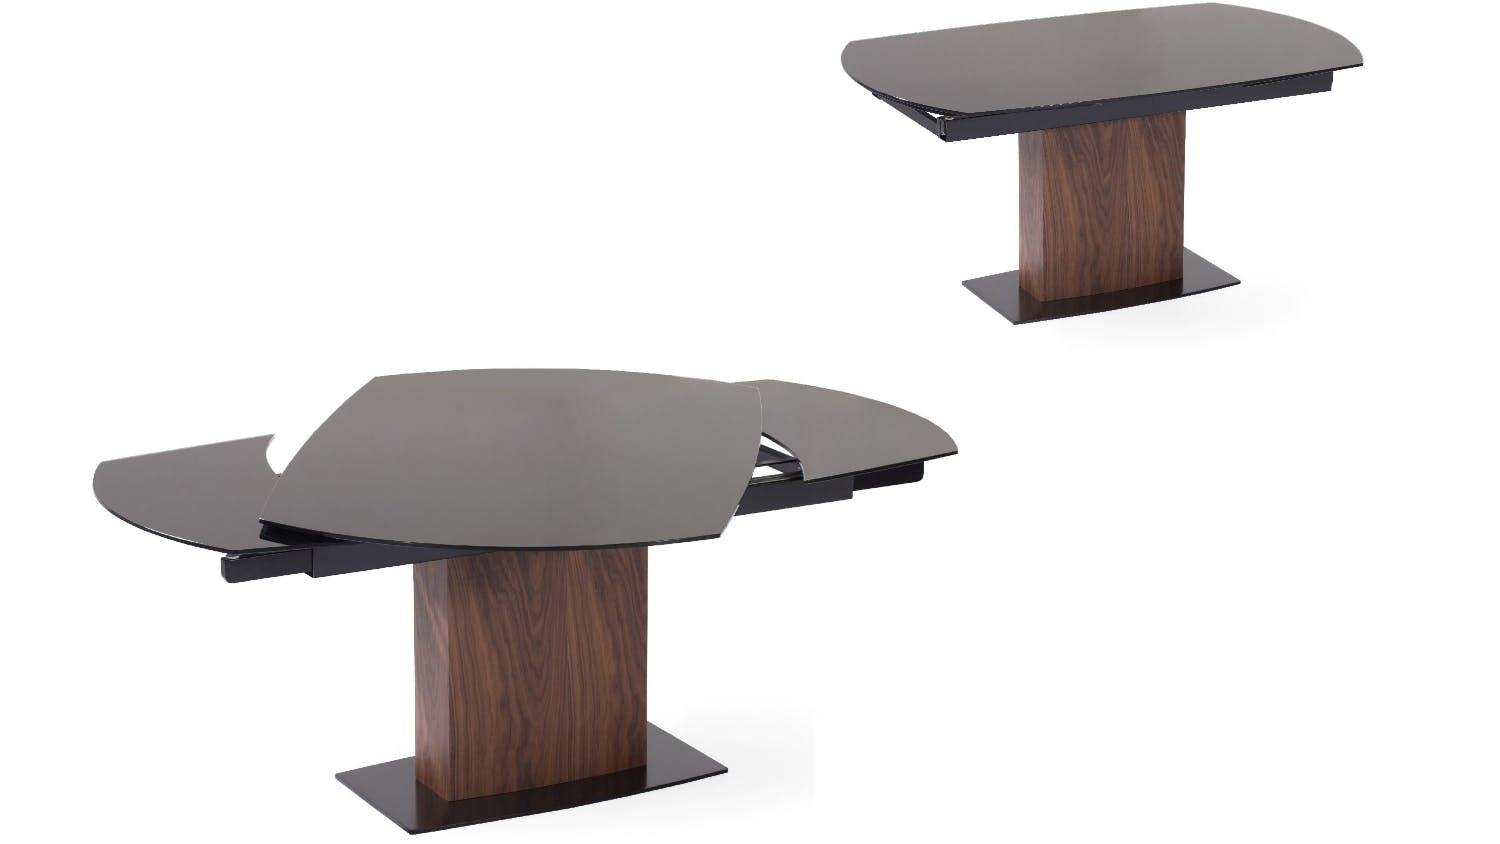 Venezia dining table harvey norman singapore for Dining room tables harvey norman